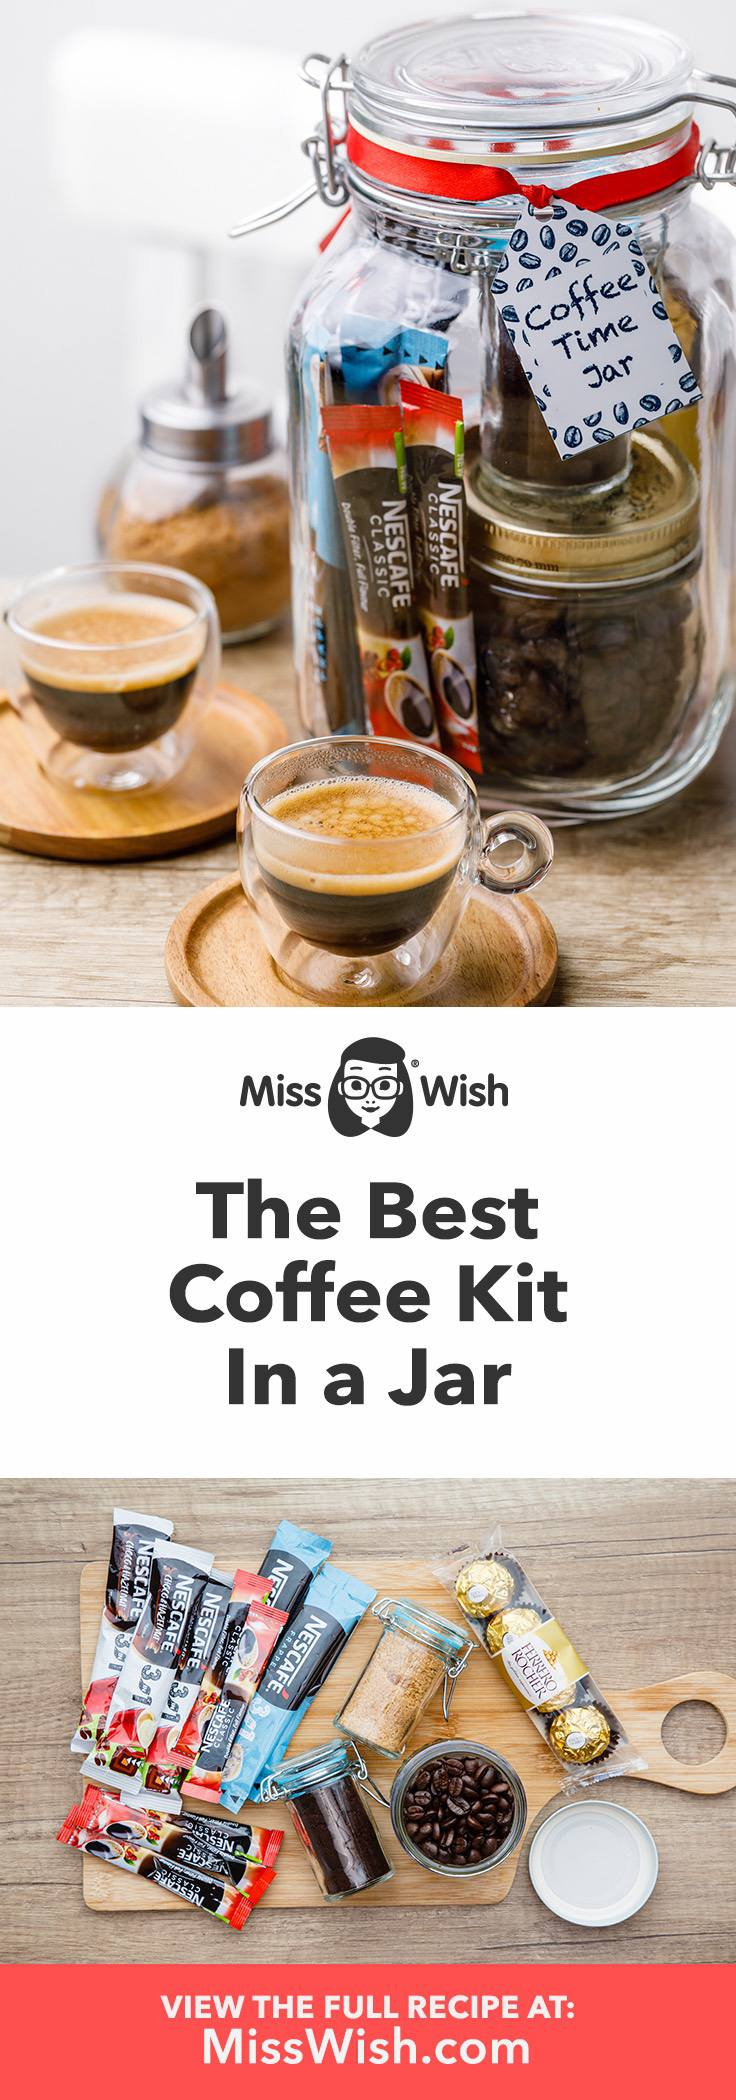 Easy diy coffee kit in a jar. Makes the perfect gift for coffee lovers!